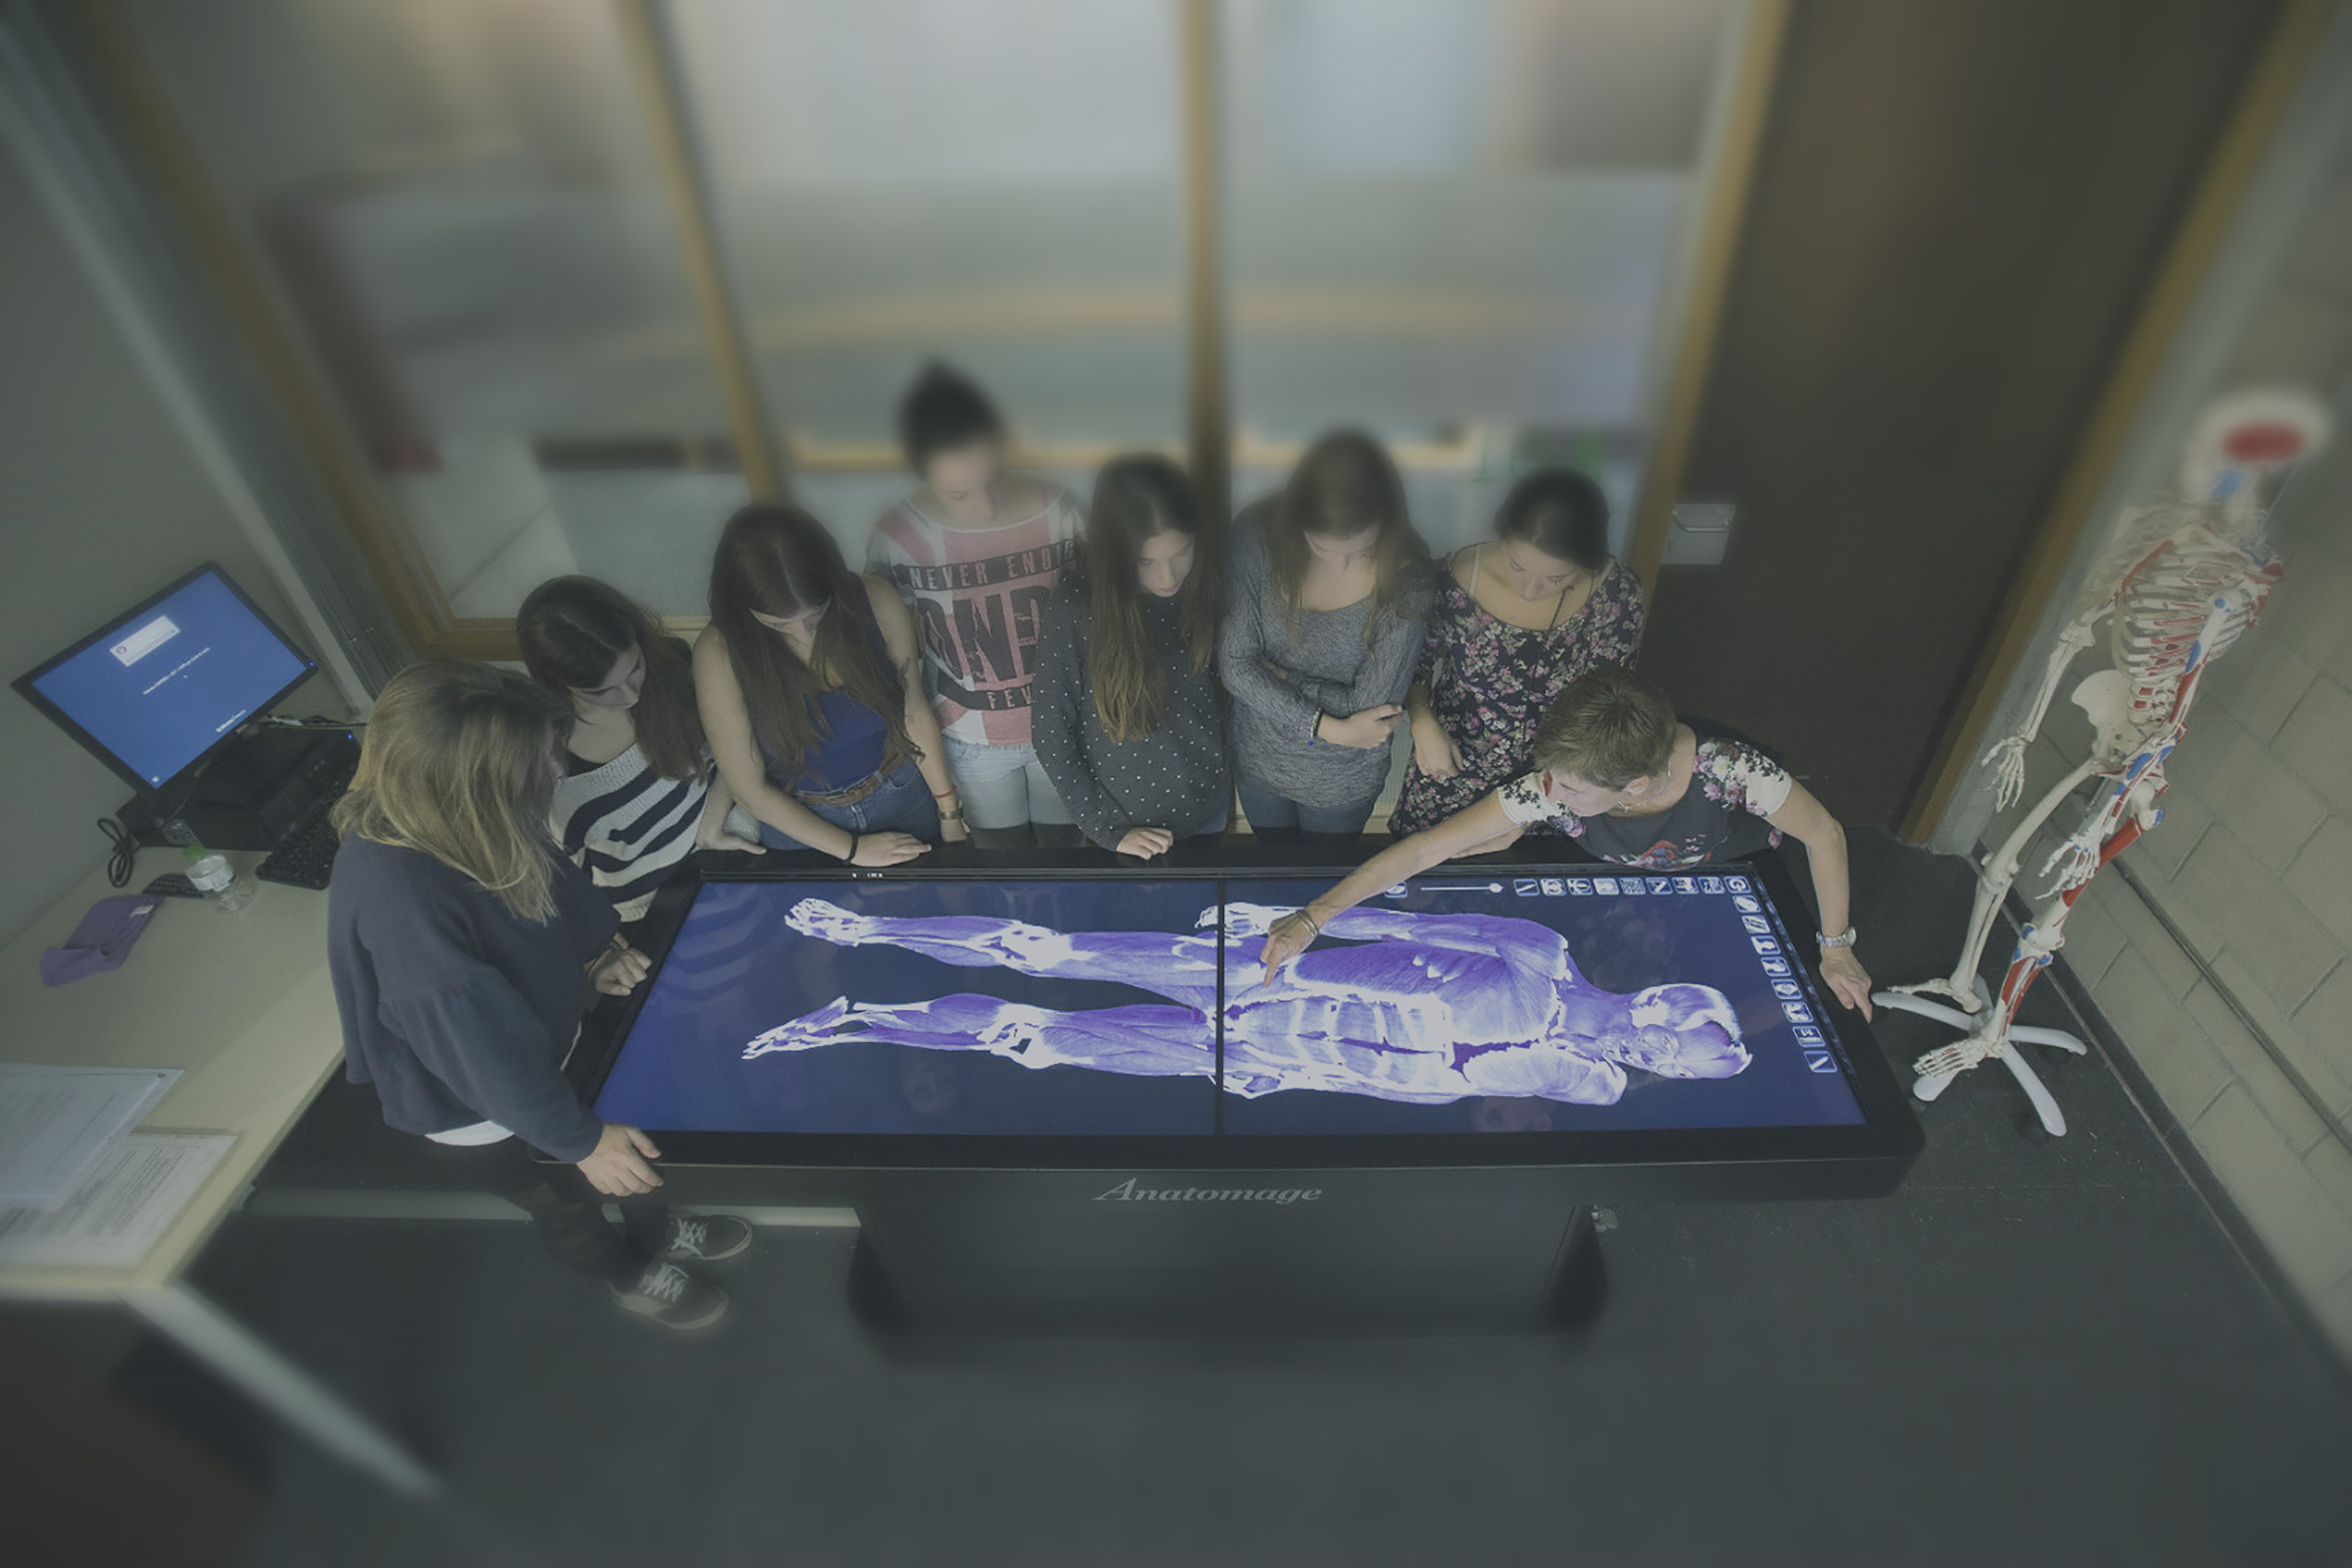 Students standing around the anatomage table examining the anatomy of human body through a touchscreen that allows them to zoom in and move the 3D figure of the human body.